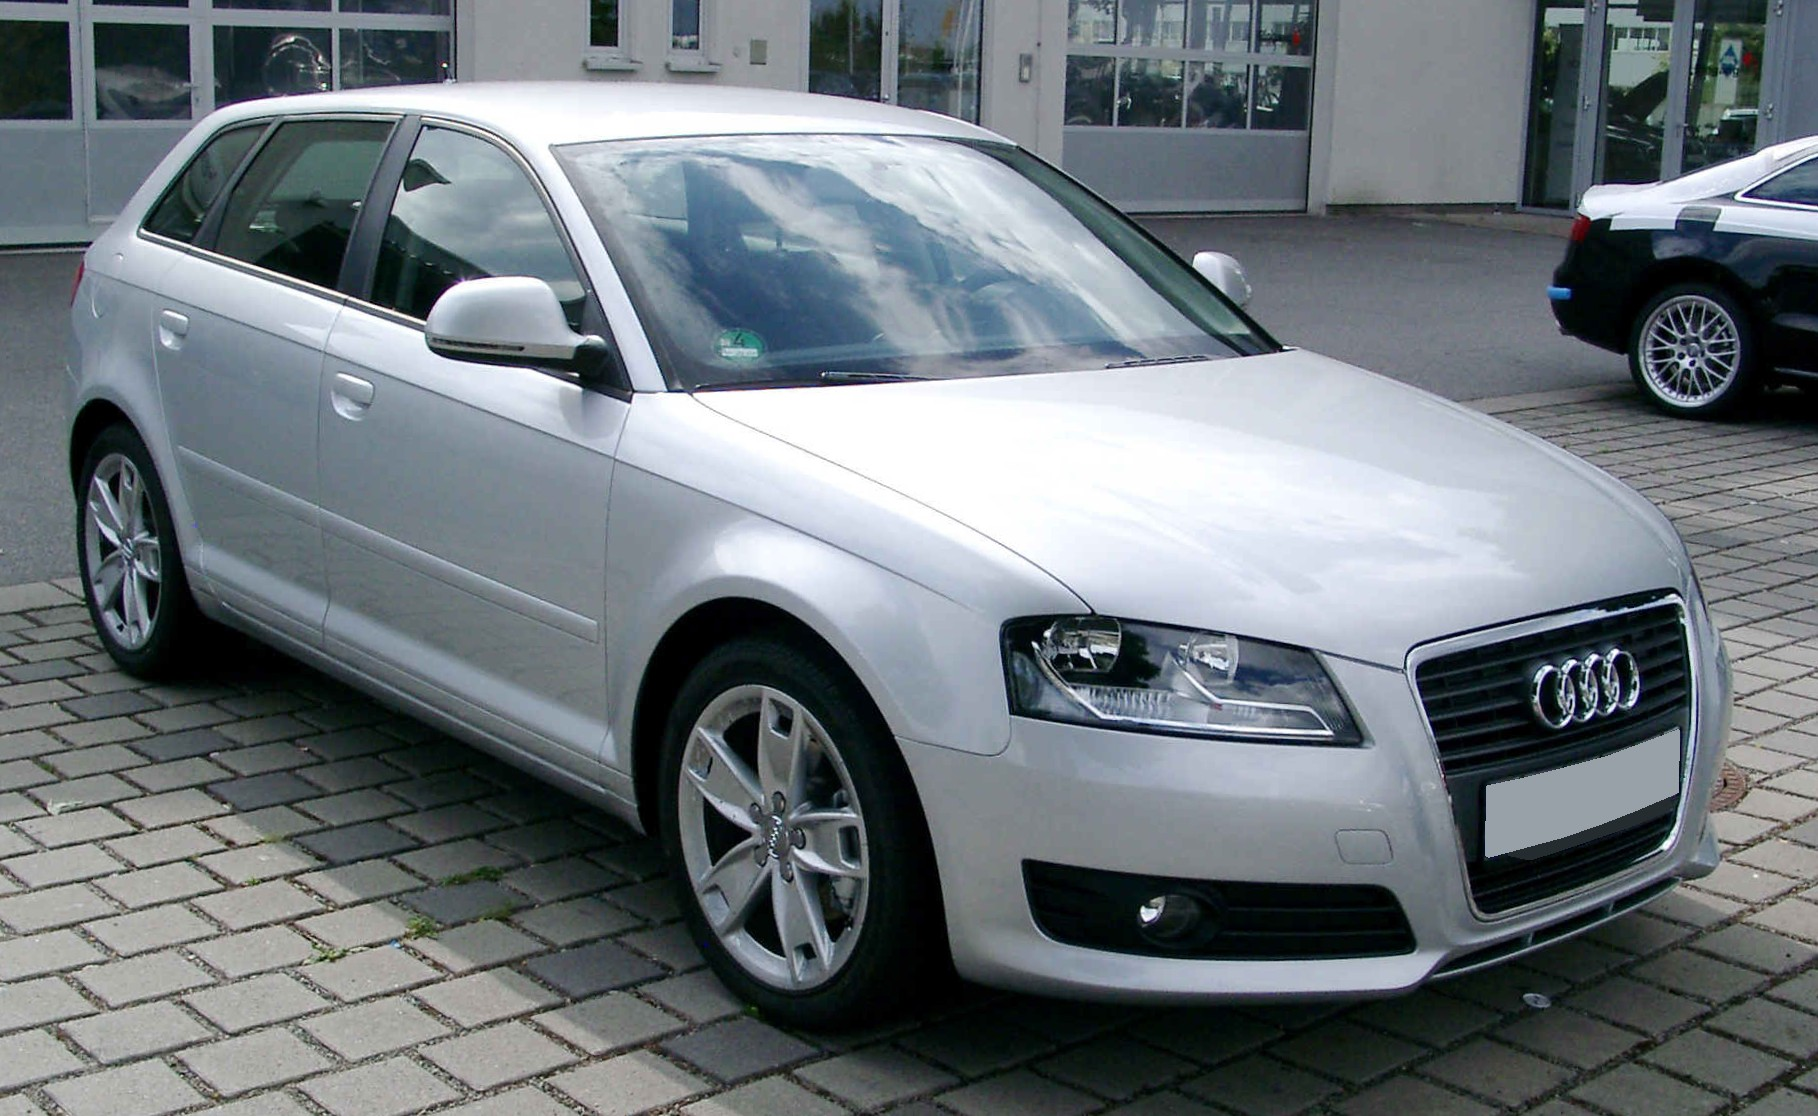 file audi a3 sportback front wikimedia commons. Black Bedroom Furniture Sets. Home Design Ideas